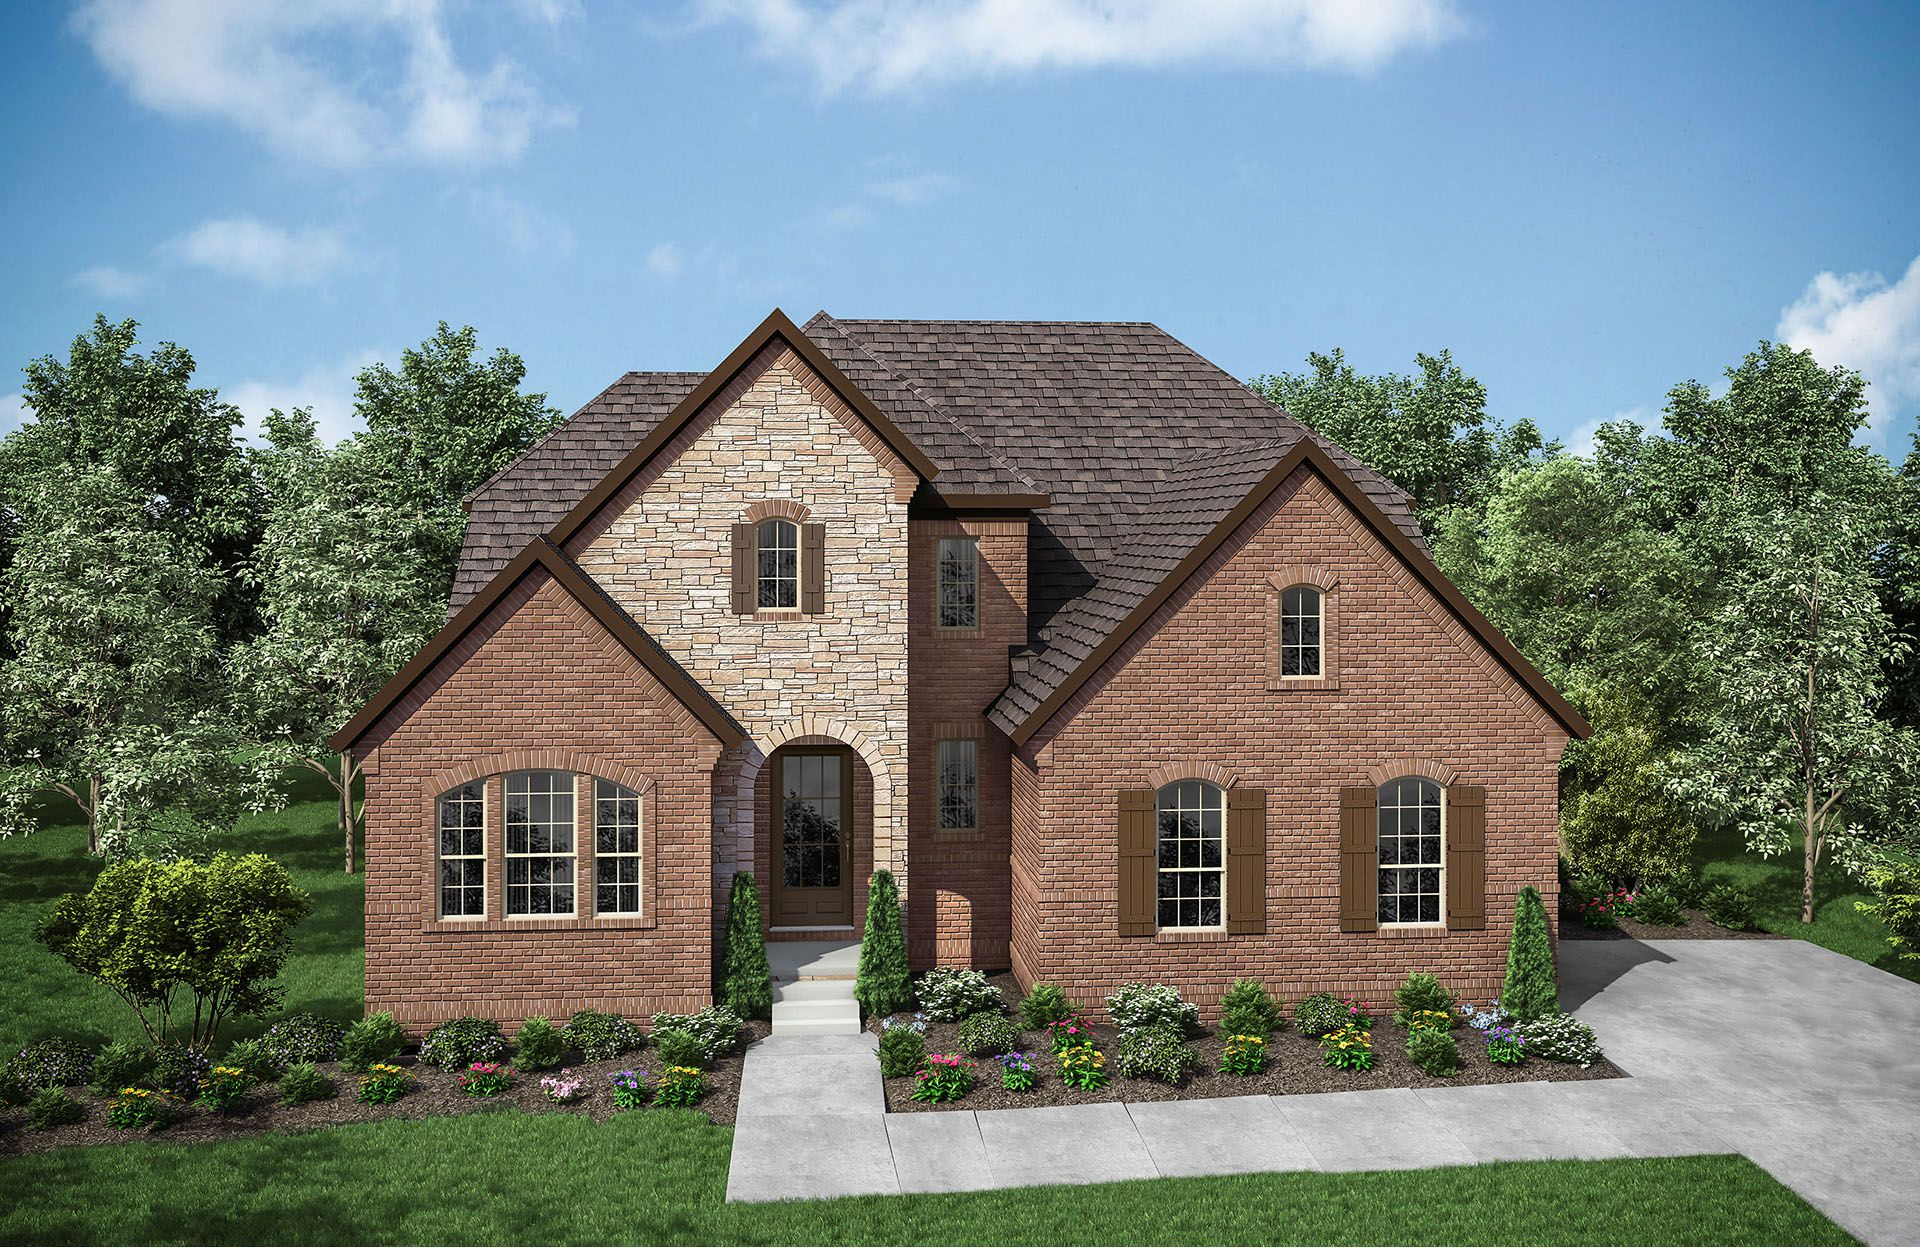 Single Family for Active at Colton 108 Asher Downs Circle Nolensville, Tennessee 37135 United States